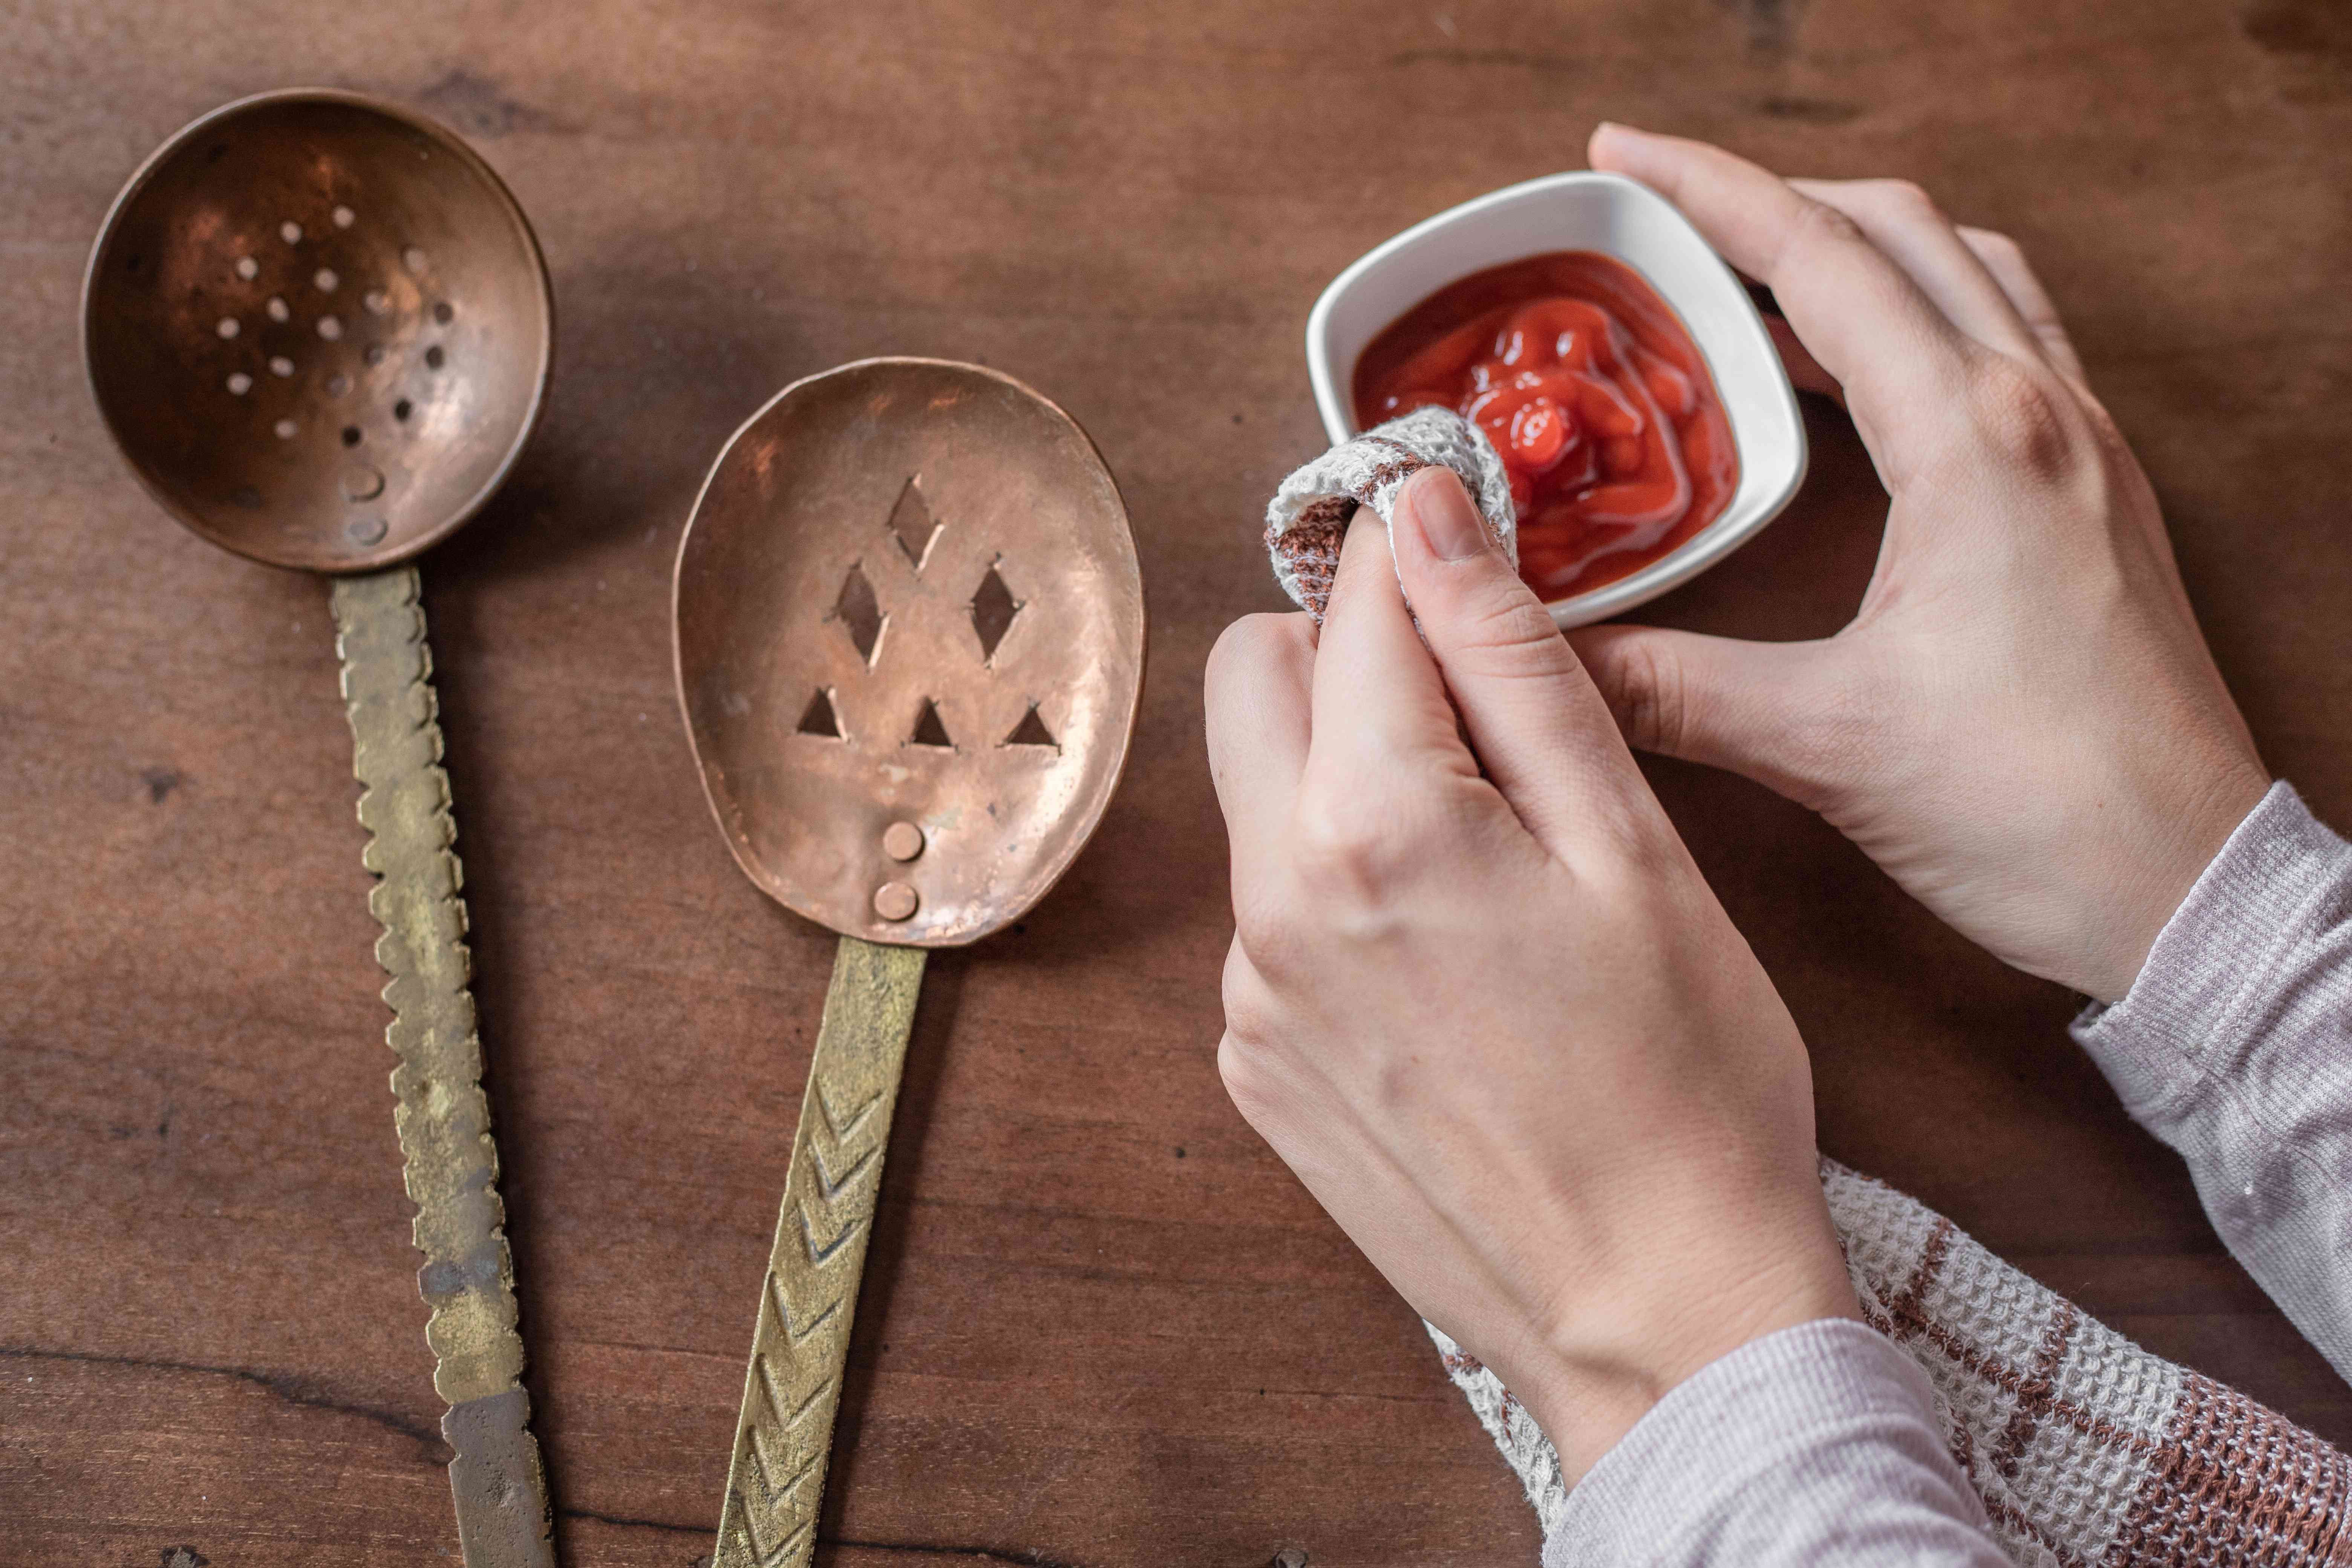 hands clean copper spoons with small bowl of ketchup